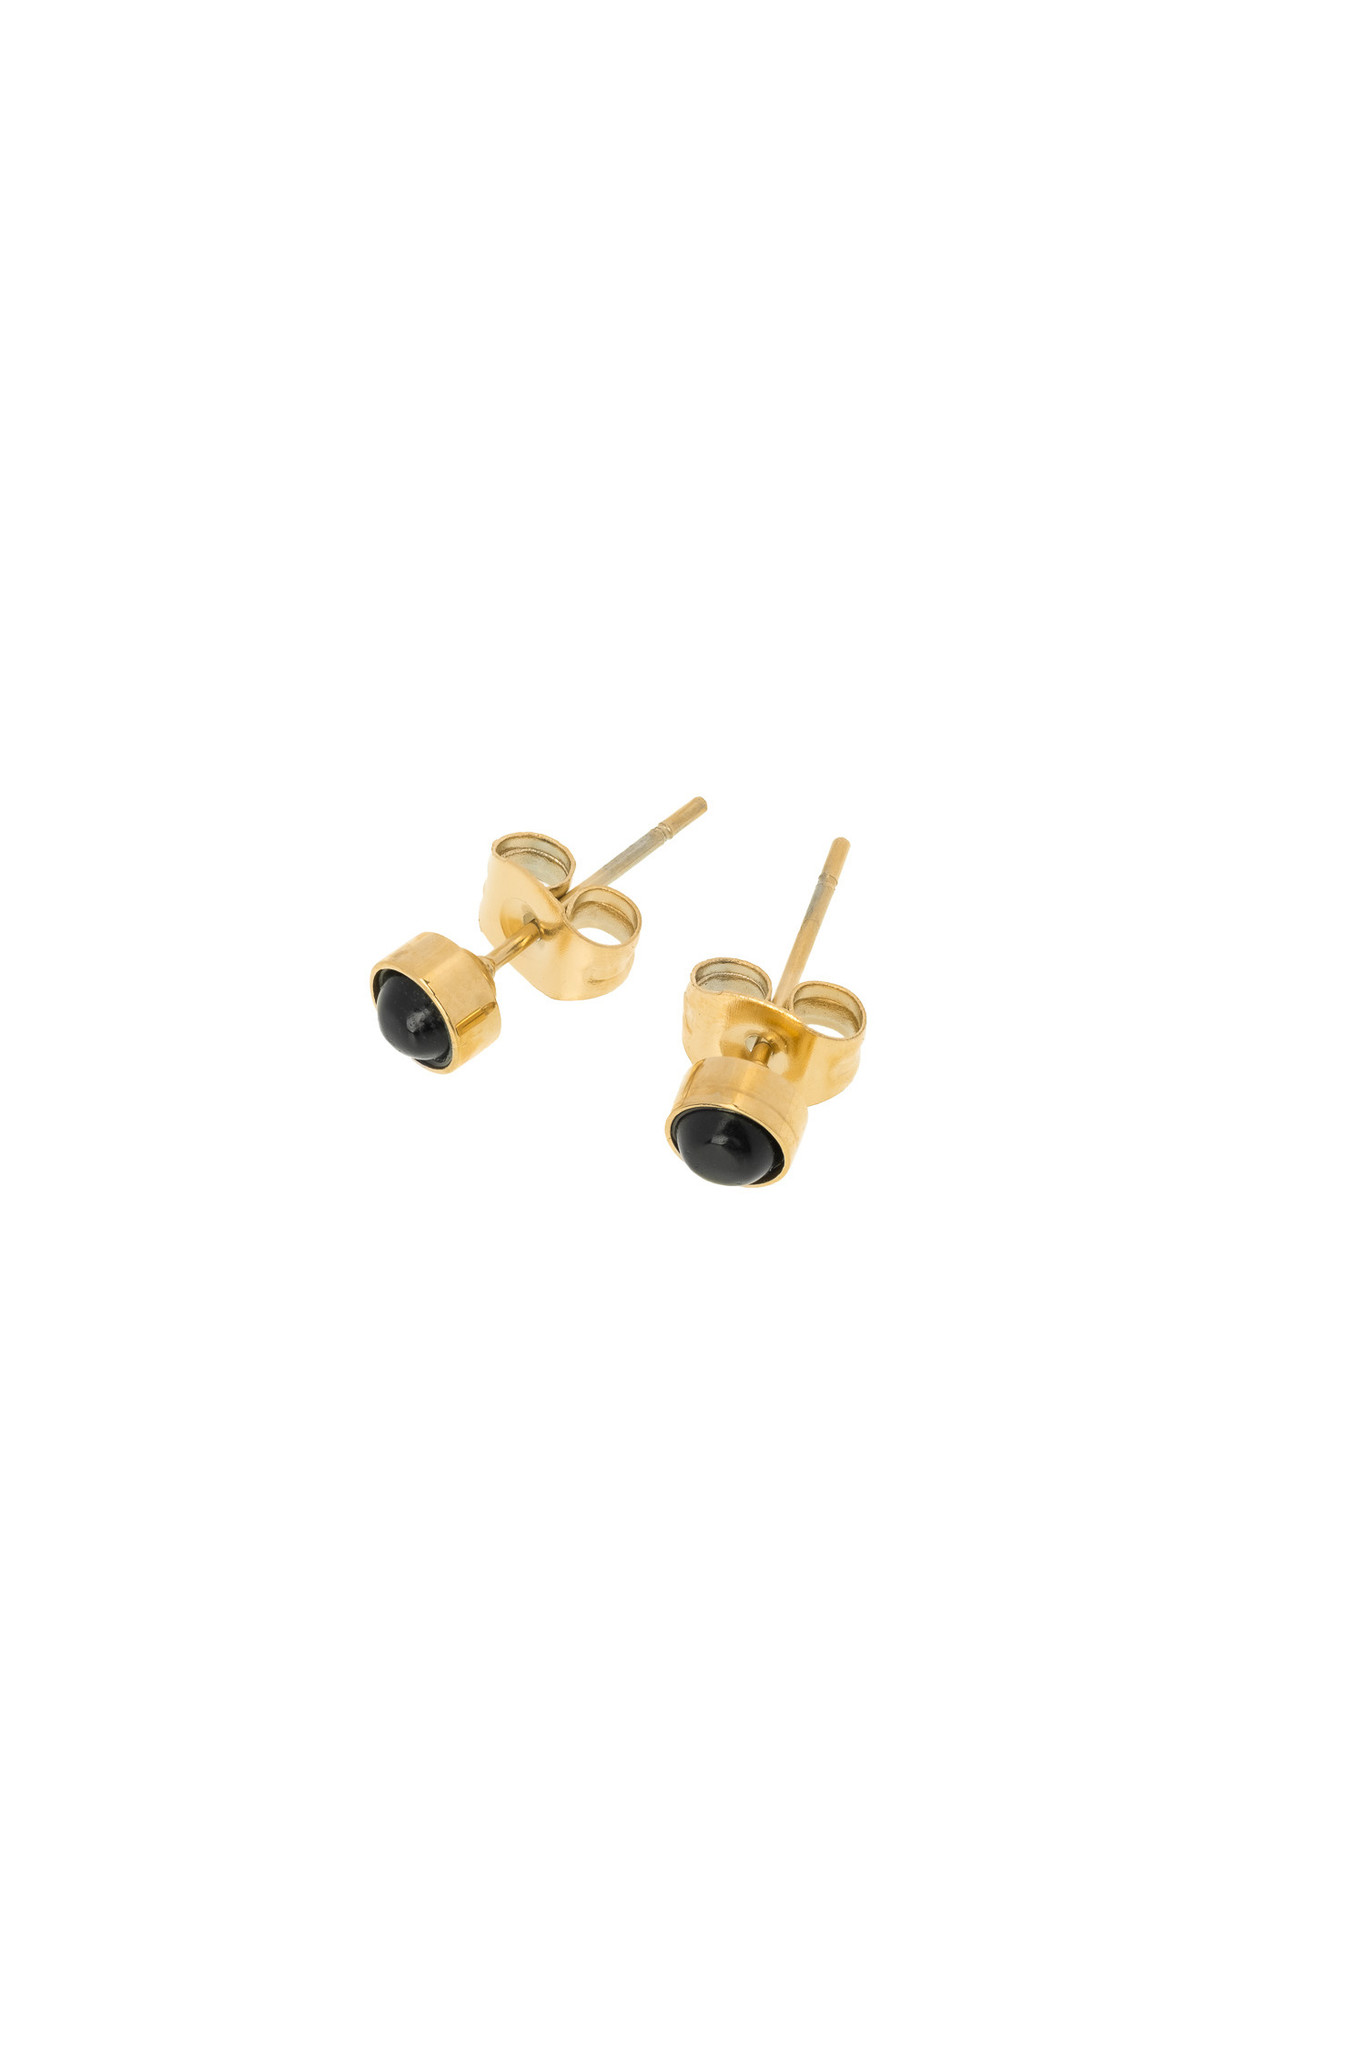 Energy Muse Earrings - Gold with Black Onyx-1